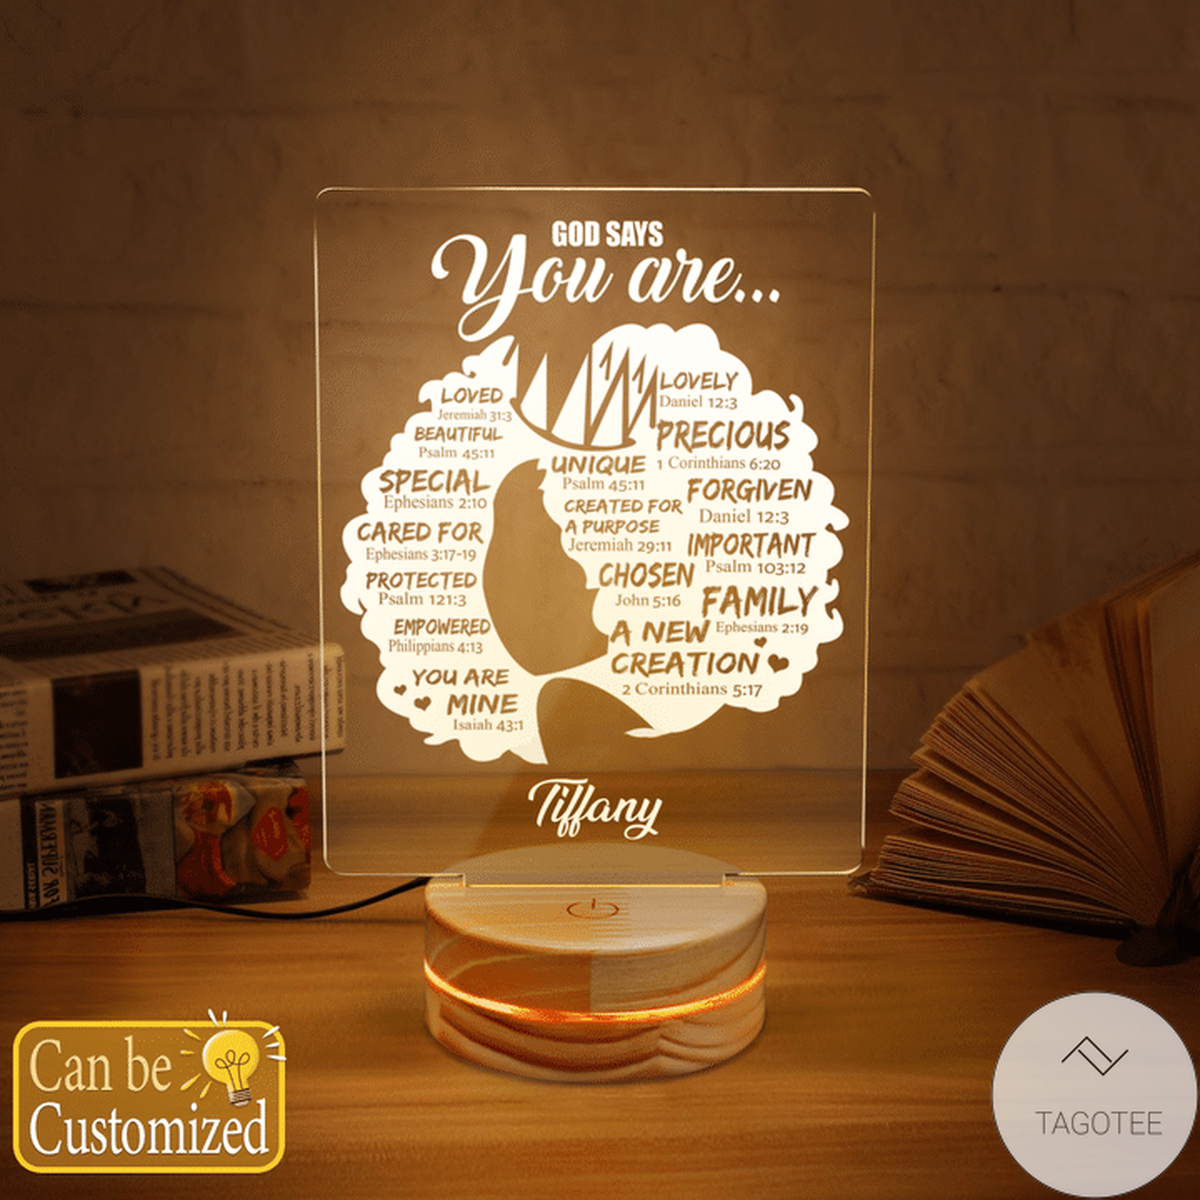 Personalized Black Girl God Says You Are Loved Beautiful Special UV LED Lamp, Night Light Lamps